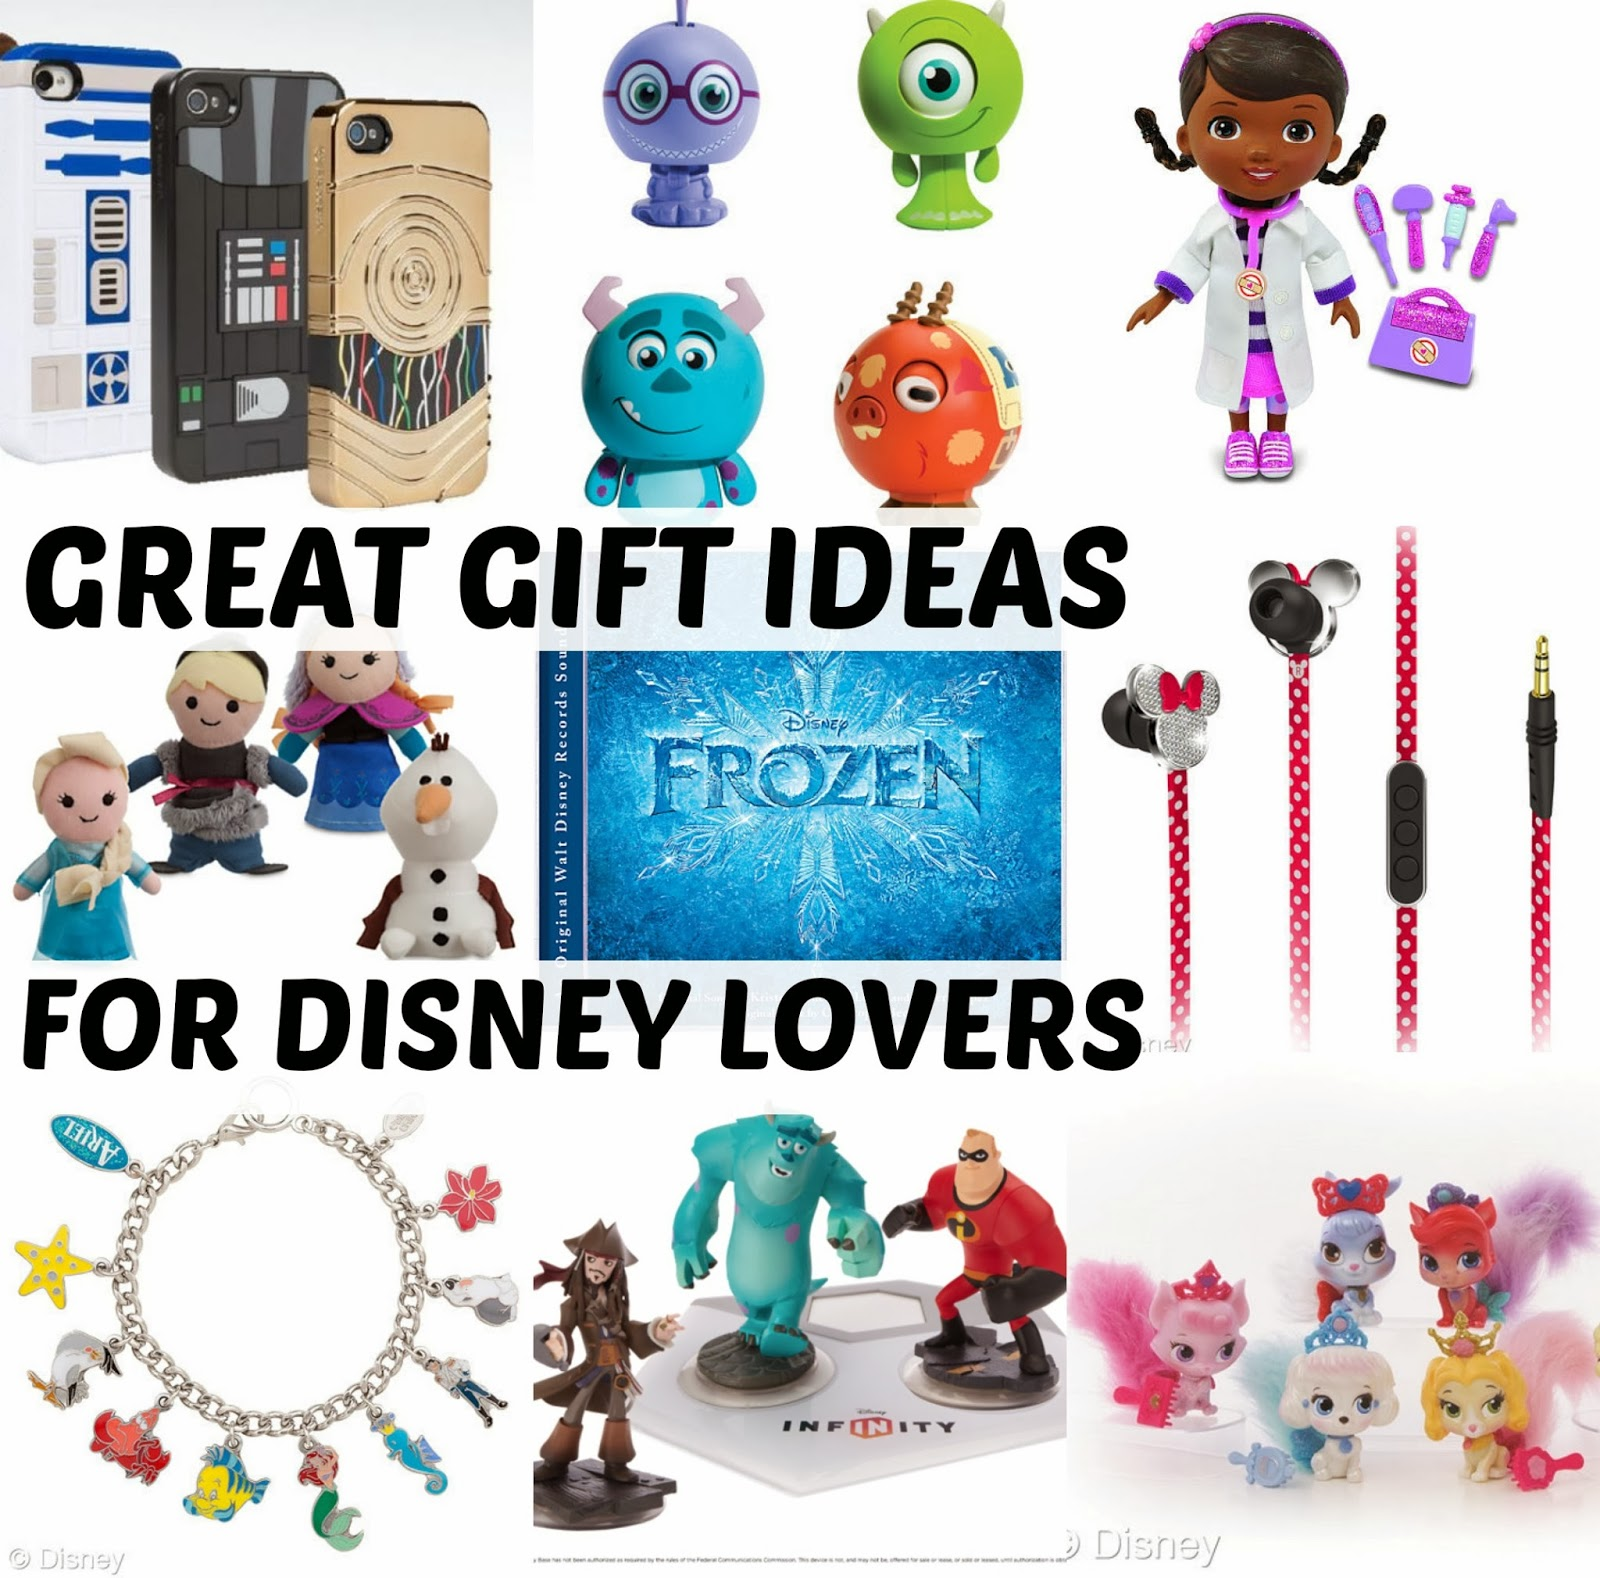 Earphones charm bracelets music and Disney Infinity figures are perfect for any gift all year long.  sc 1 st  Disney Sisters & Disney Sisters: Great Gift Ideas for Disney Lovers